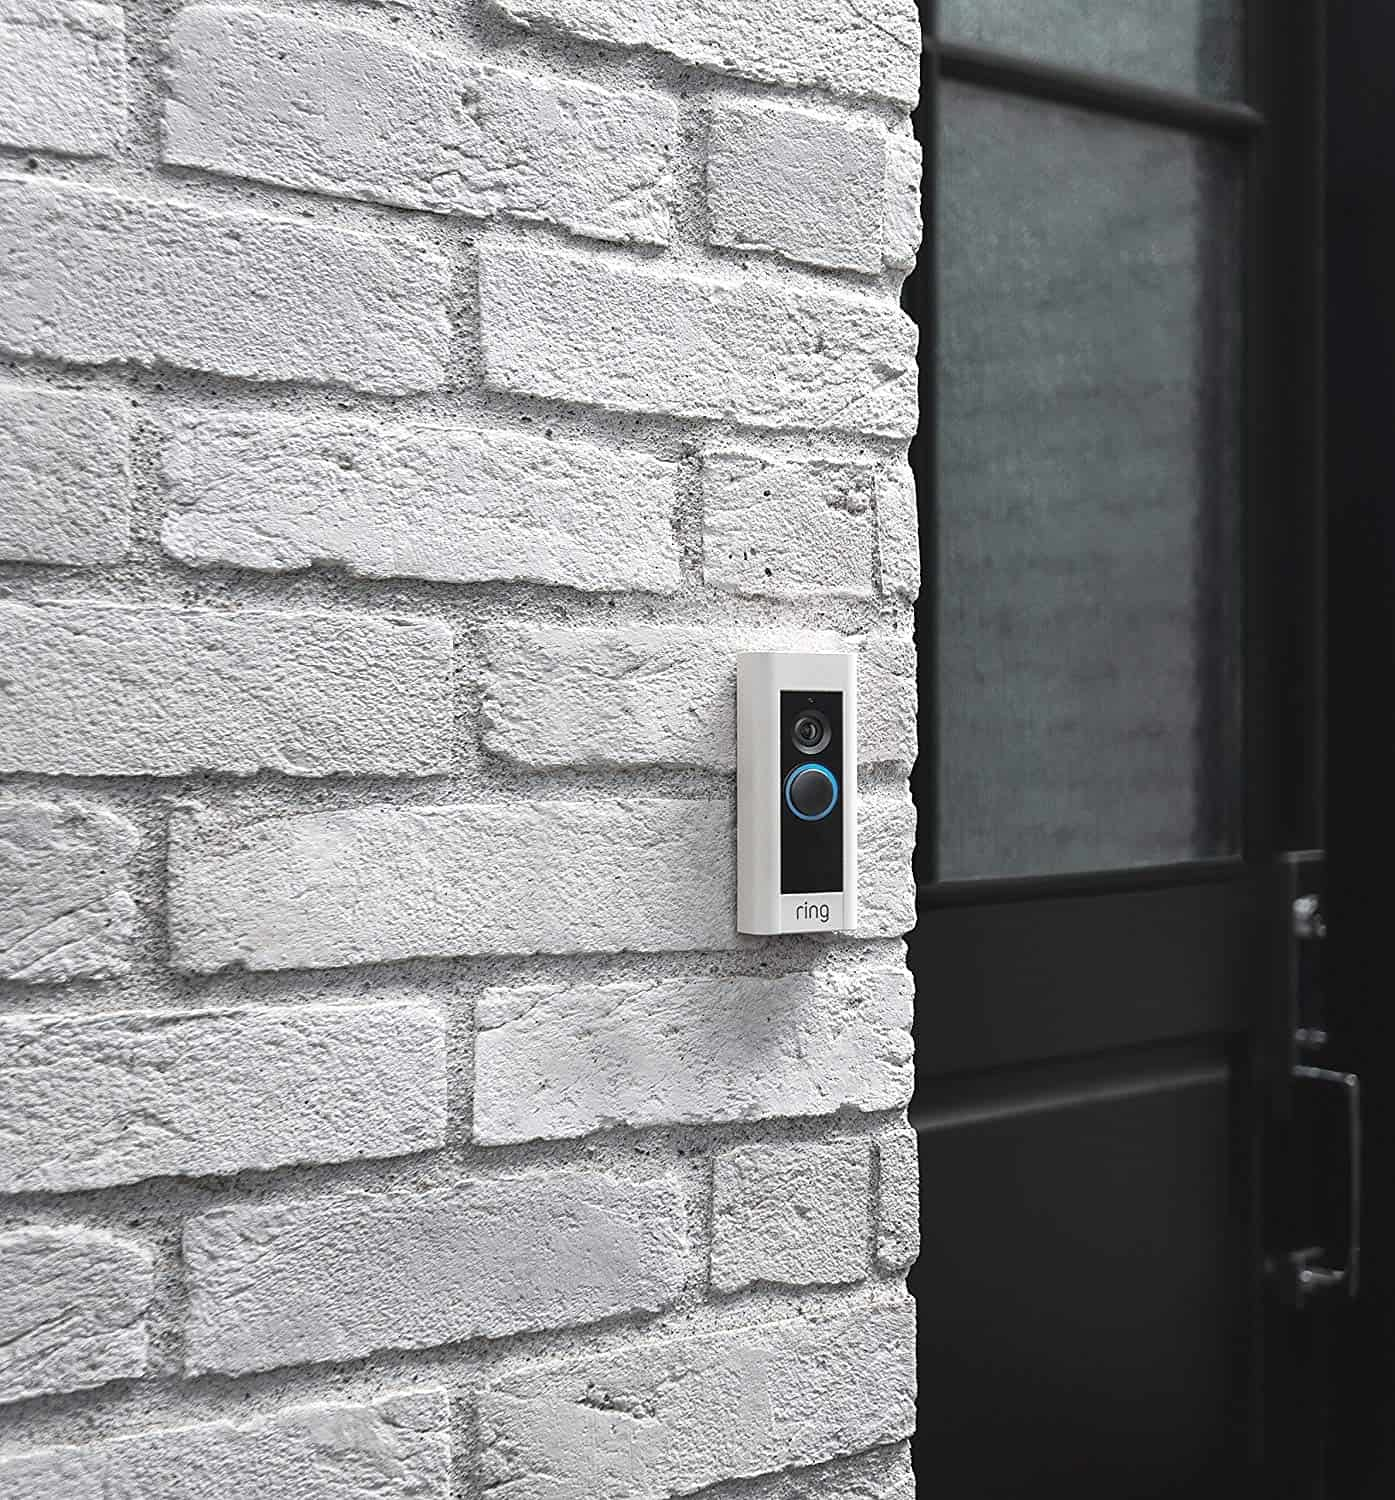 Prime Day Deal: Grab The Ring Video Doorbell Pro For Just $169